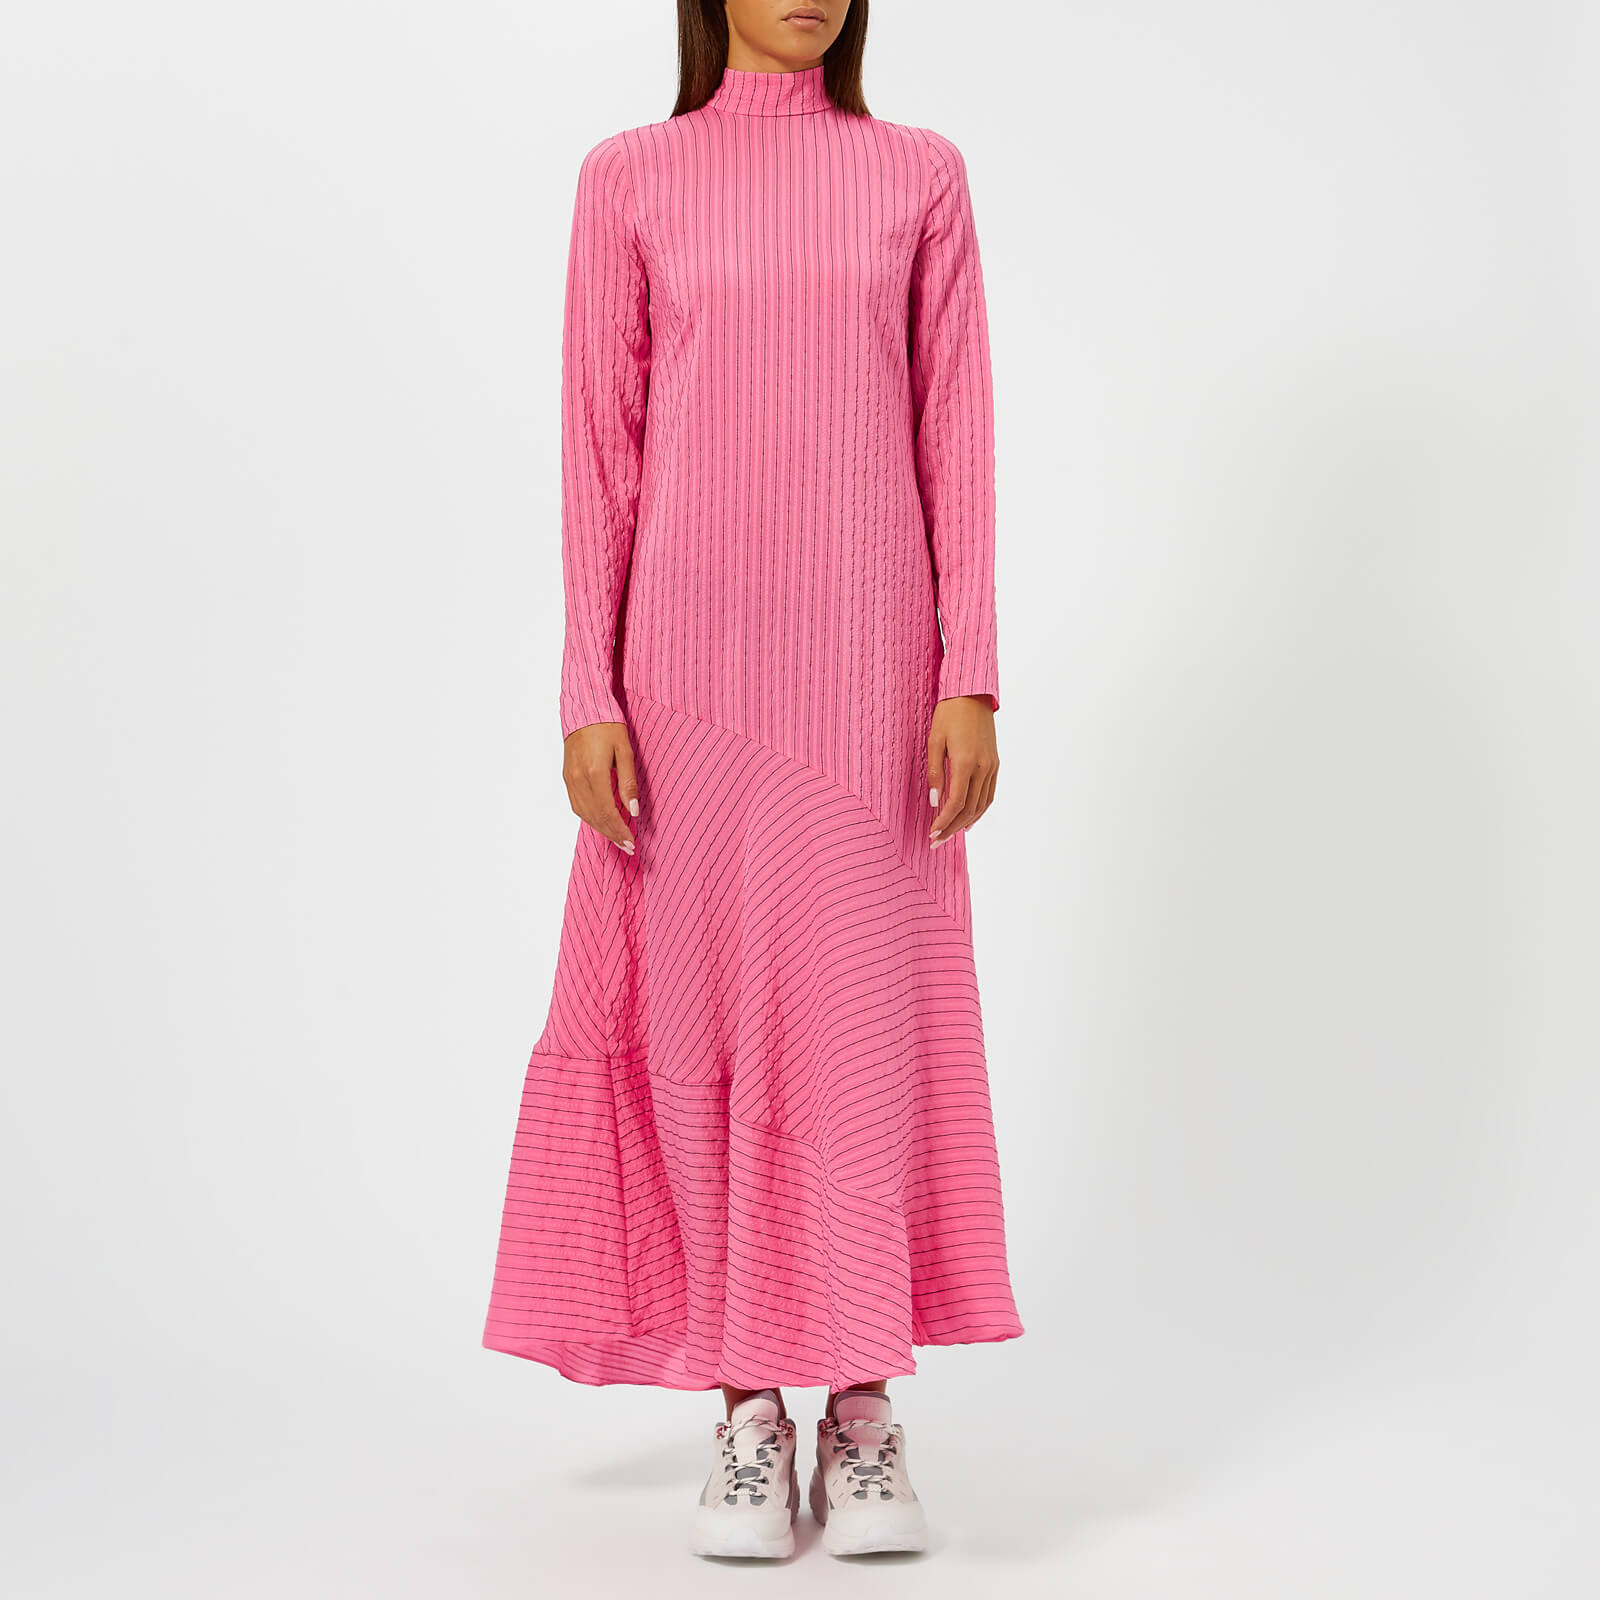 ab249f2ab5f Ganni Women s Lynch Seersucker Dress - Hot Pink - Free UK Delivery over £50